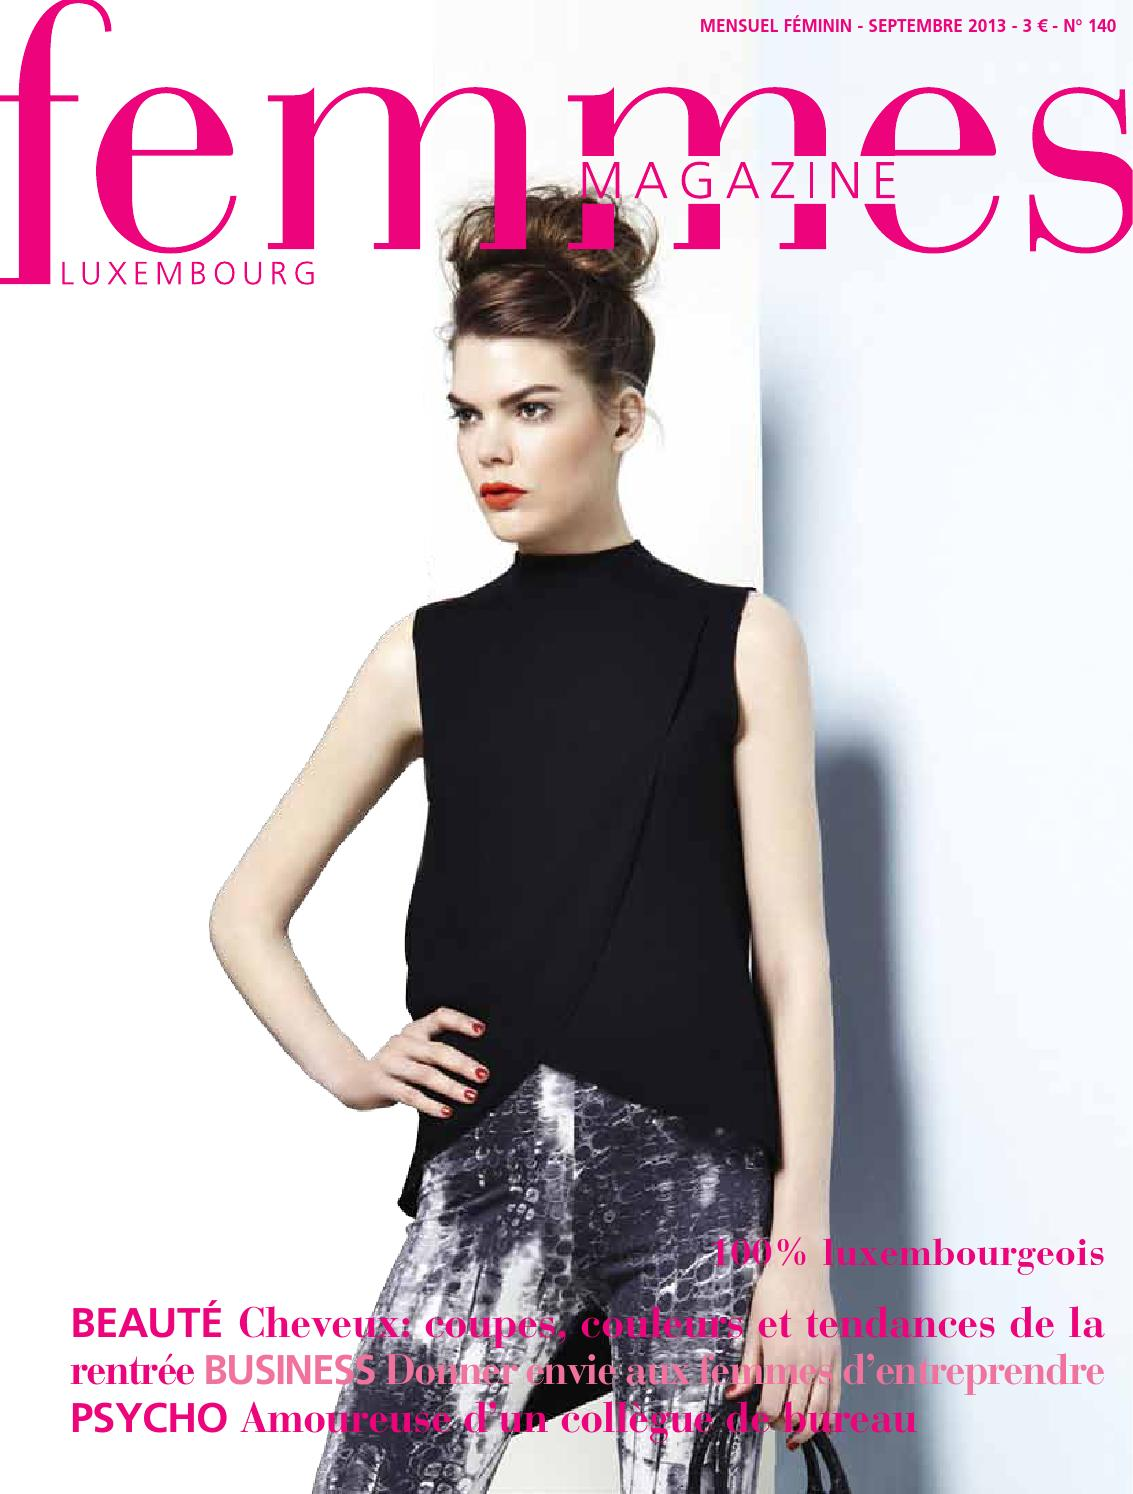 25a60af681cd Femmes Magazine 140 - septembre 2013 by alinea communication - issuu